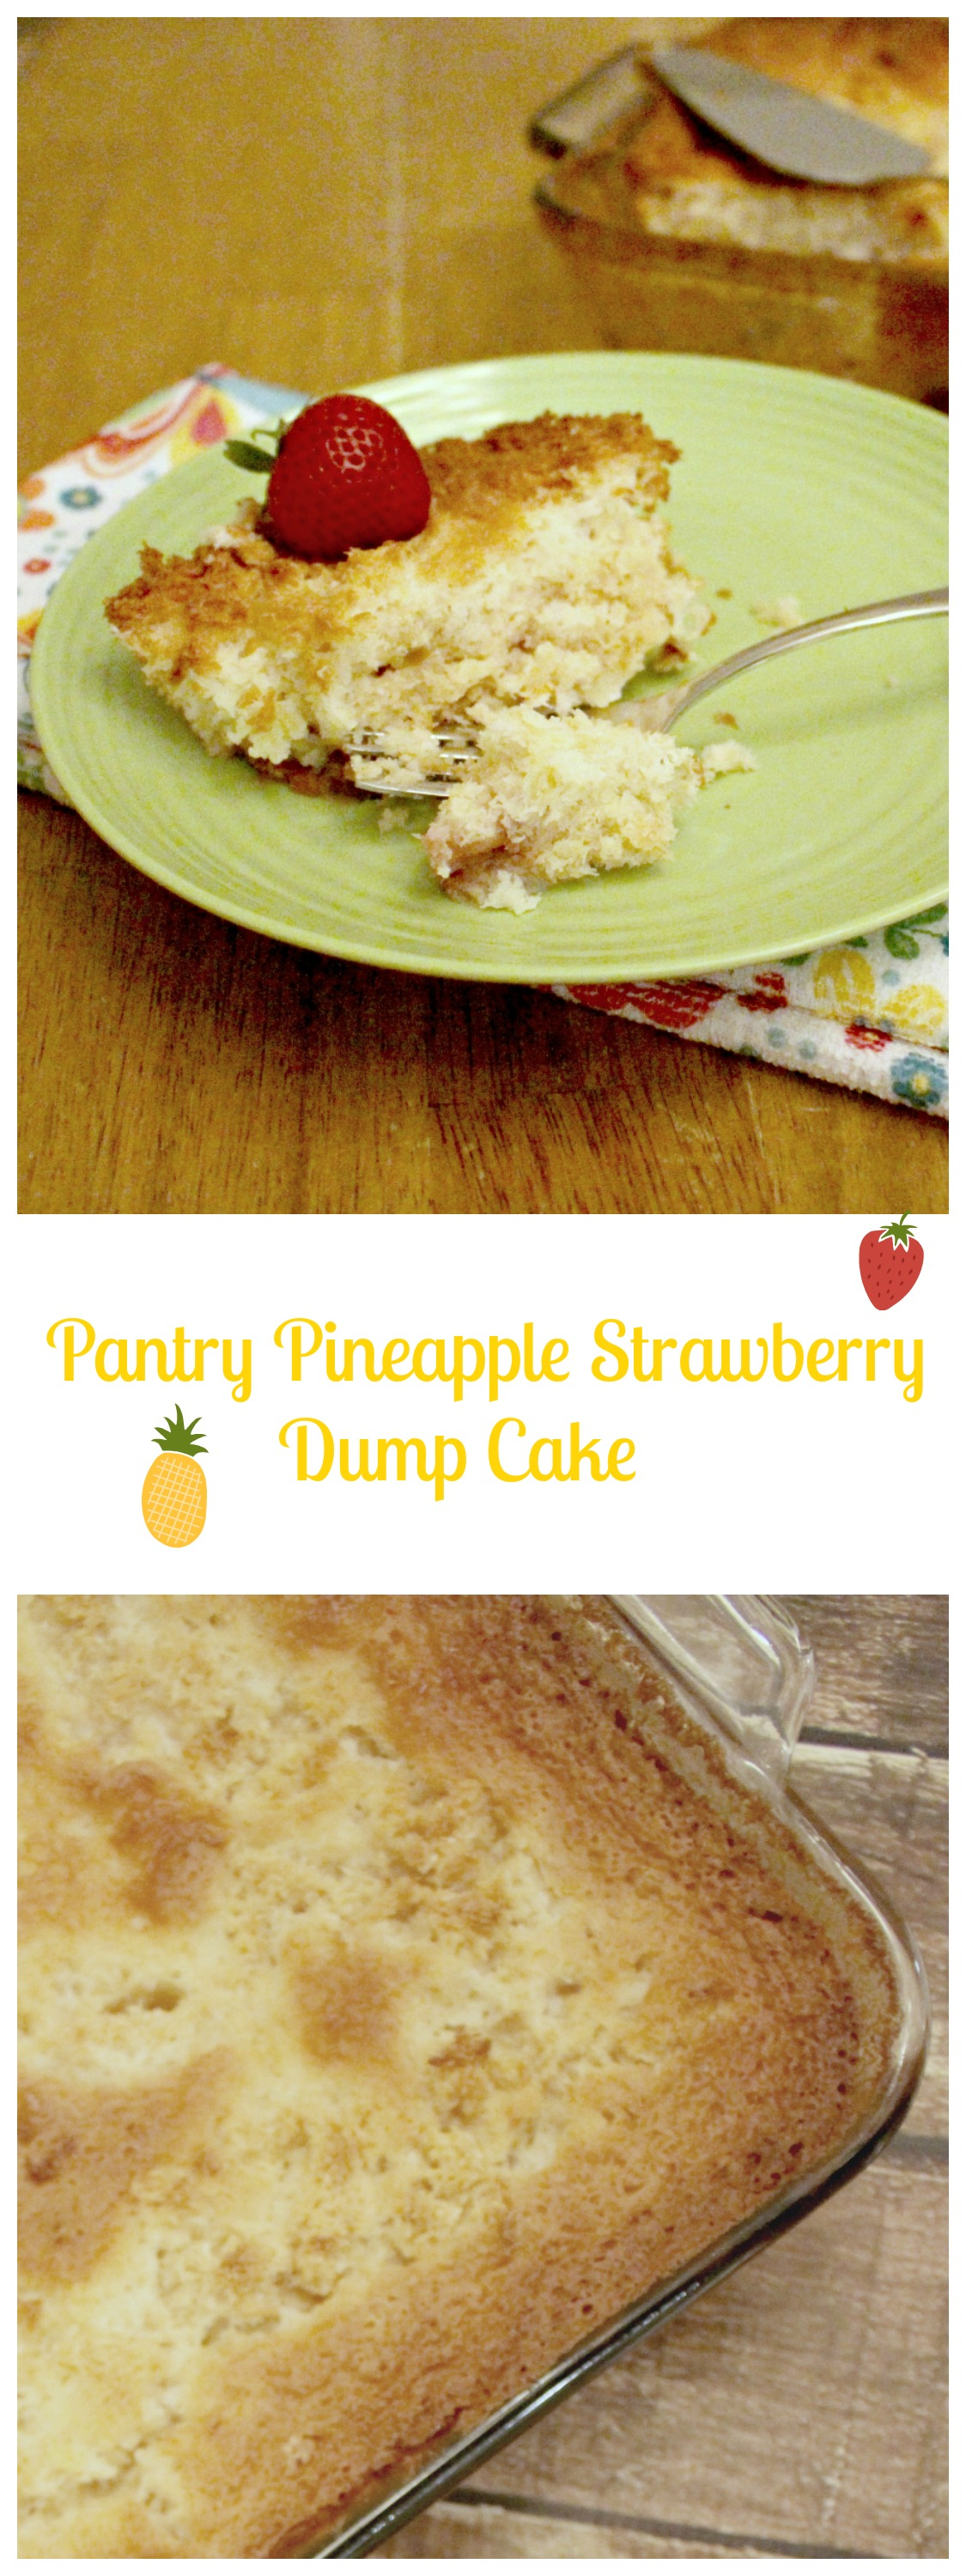 pineapple dump cake pantry pineapple strawberry dump cake daily 6541